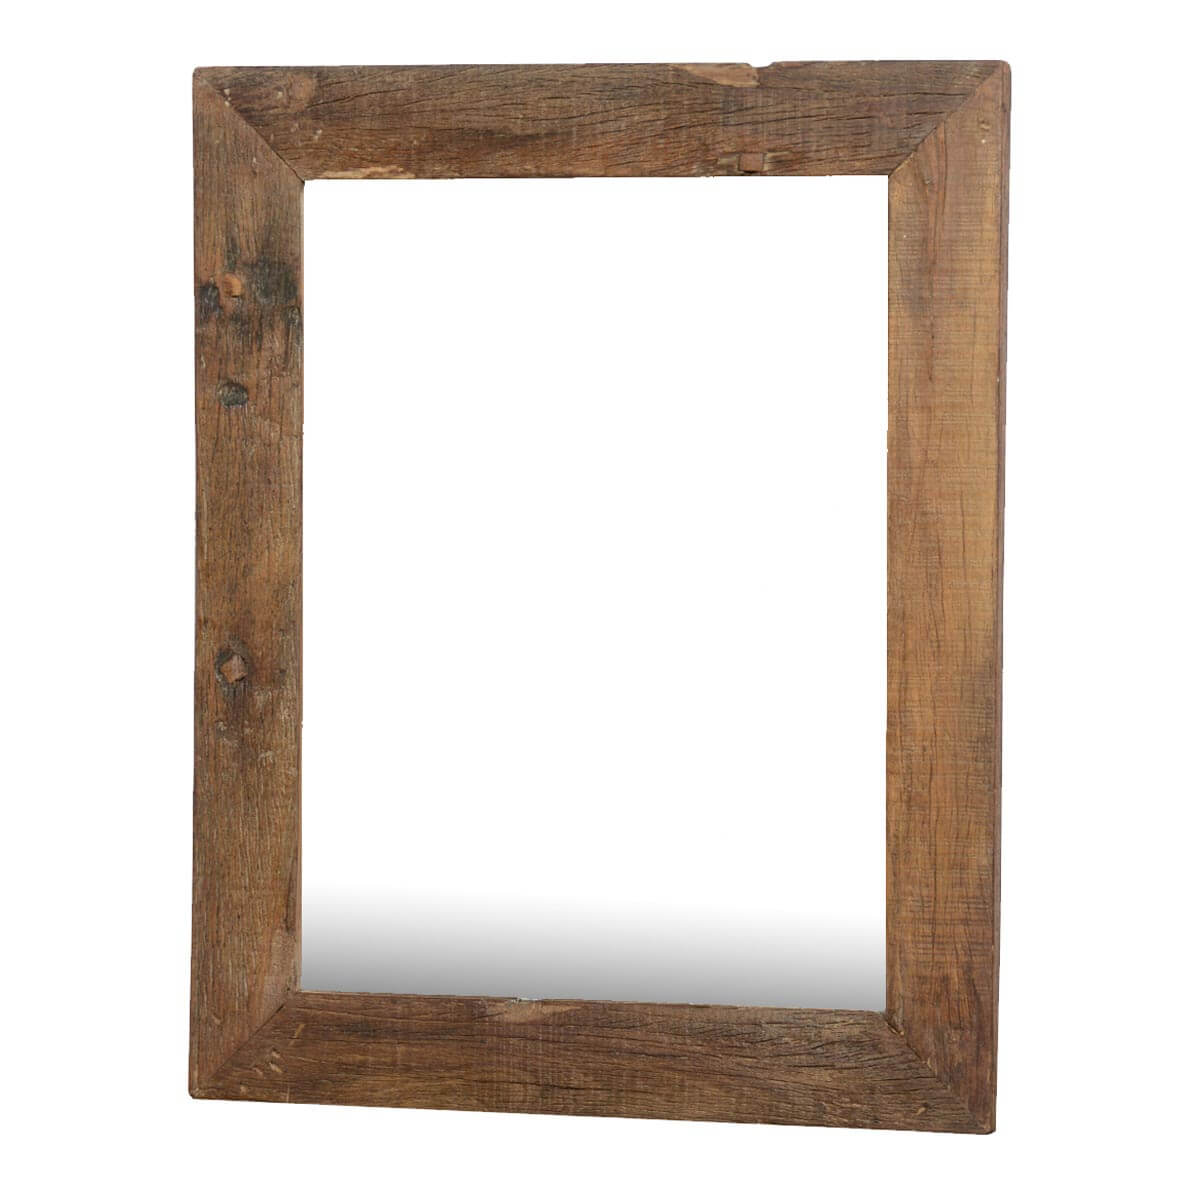 Appalachian rustic large reclaimed wood wall mirror w for Wood framed mirrors